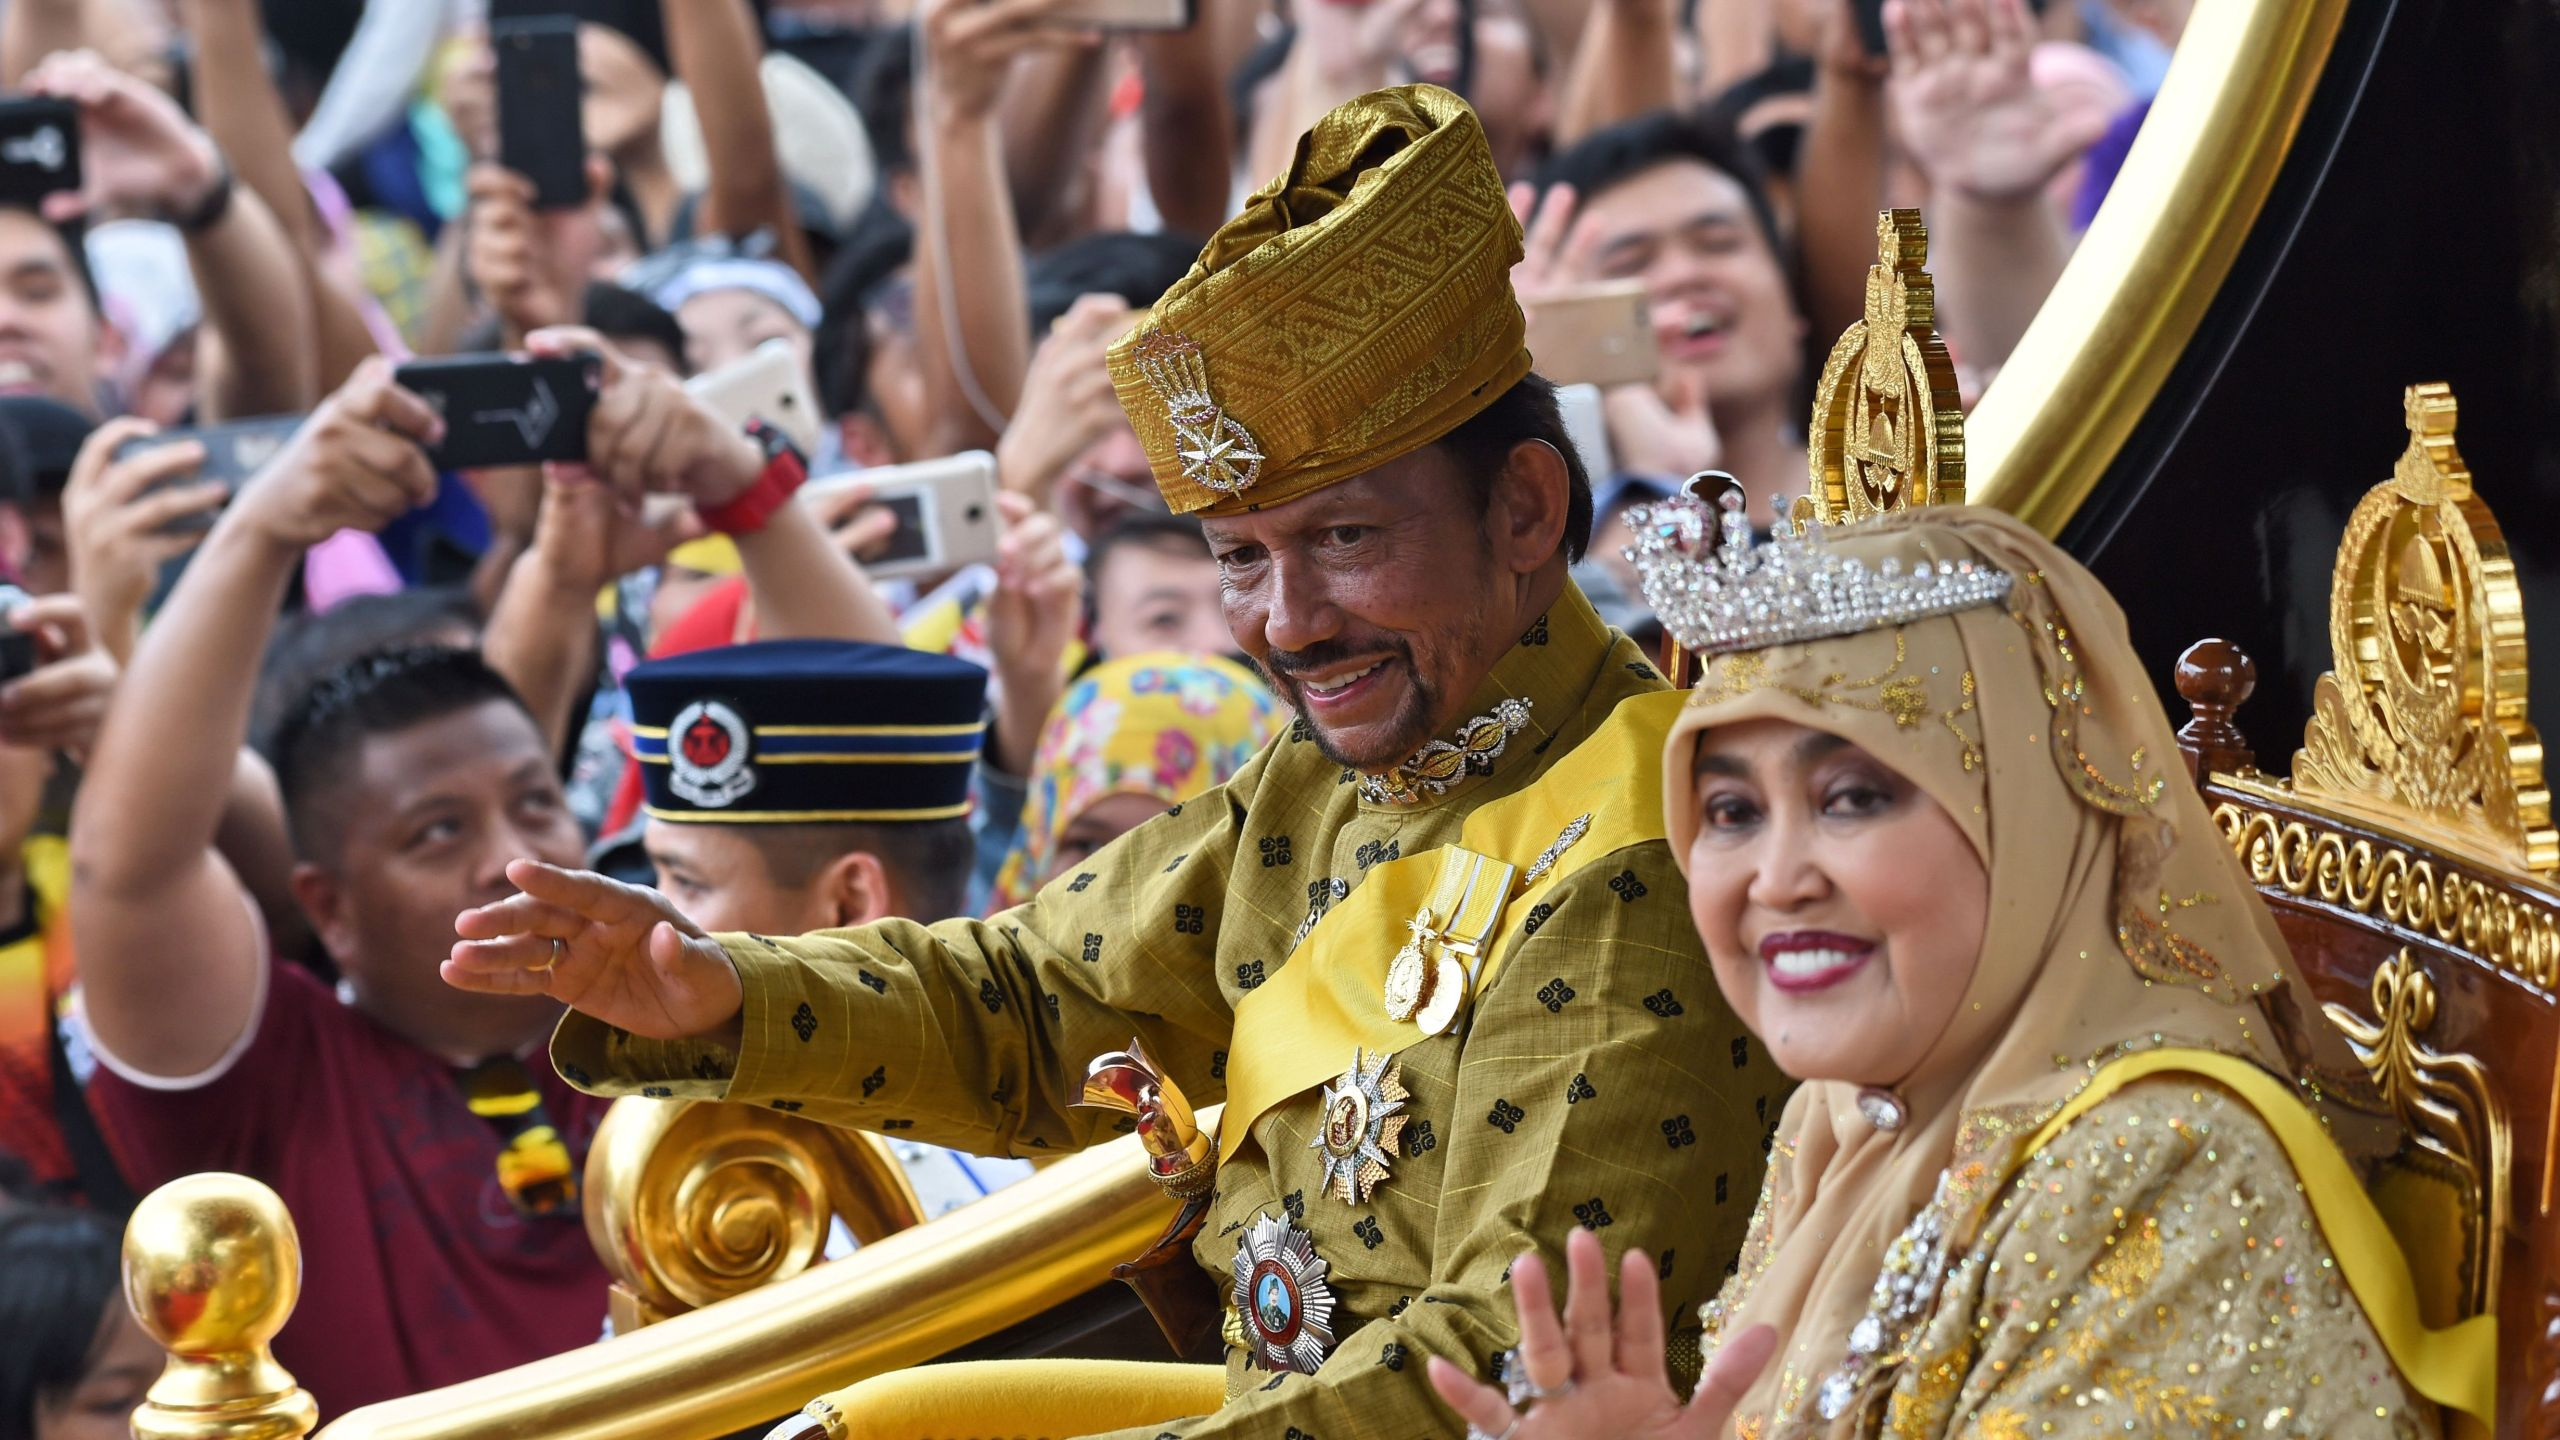 Brunei's Sultan Hassanal Bolkiah and Queen Saleha ride in a royal chariot during a procession to mark his golden jubilee of accession to the throne in Bandar Seri Begawan on October 5, 2017. (Credit: Roslan Rahman/AFP/Getty Images)